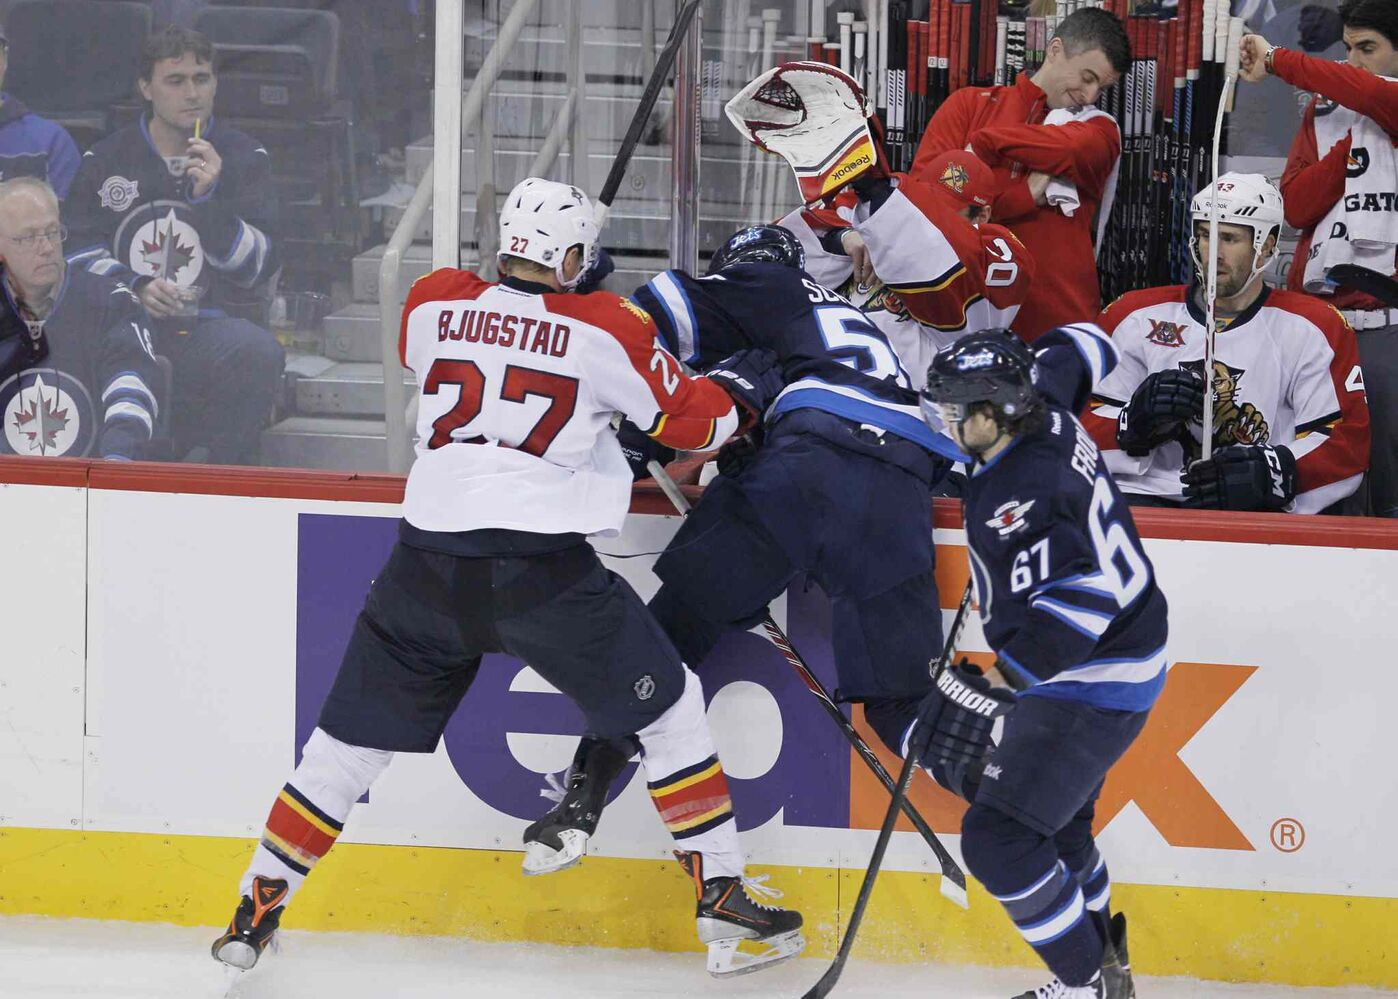 Winnipeg Jets' Mark Scheifele (55) gets dumped into the Florida bench by Florida Panthers' Nick Bjugstad (27) as Jets' Michael Frolik (67) skates by during third period. (John Woods / The Canadian Press)